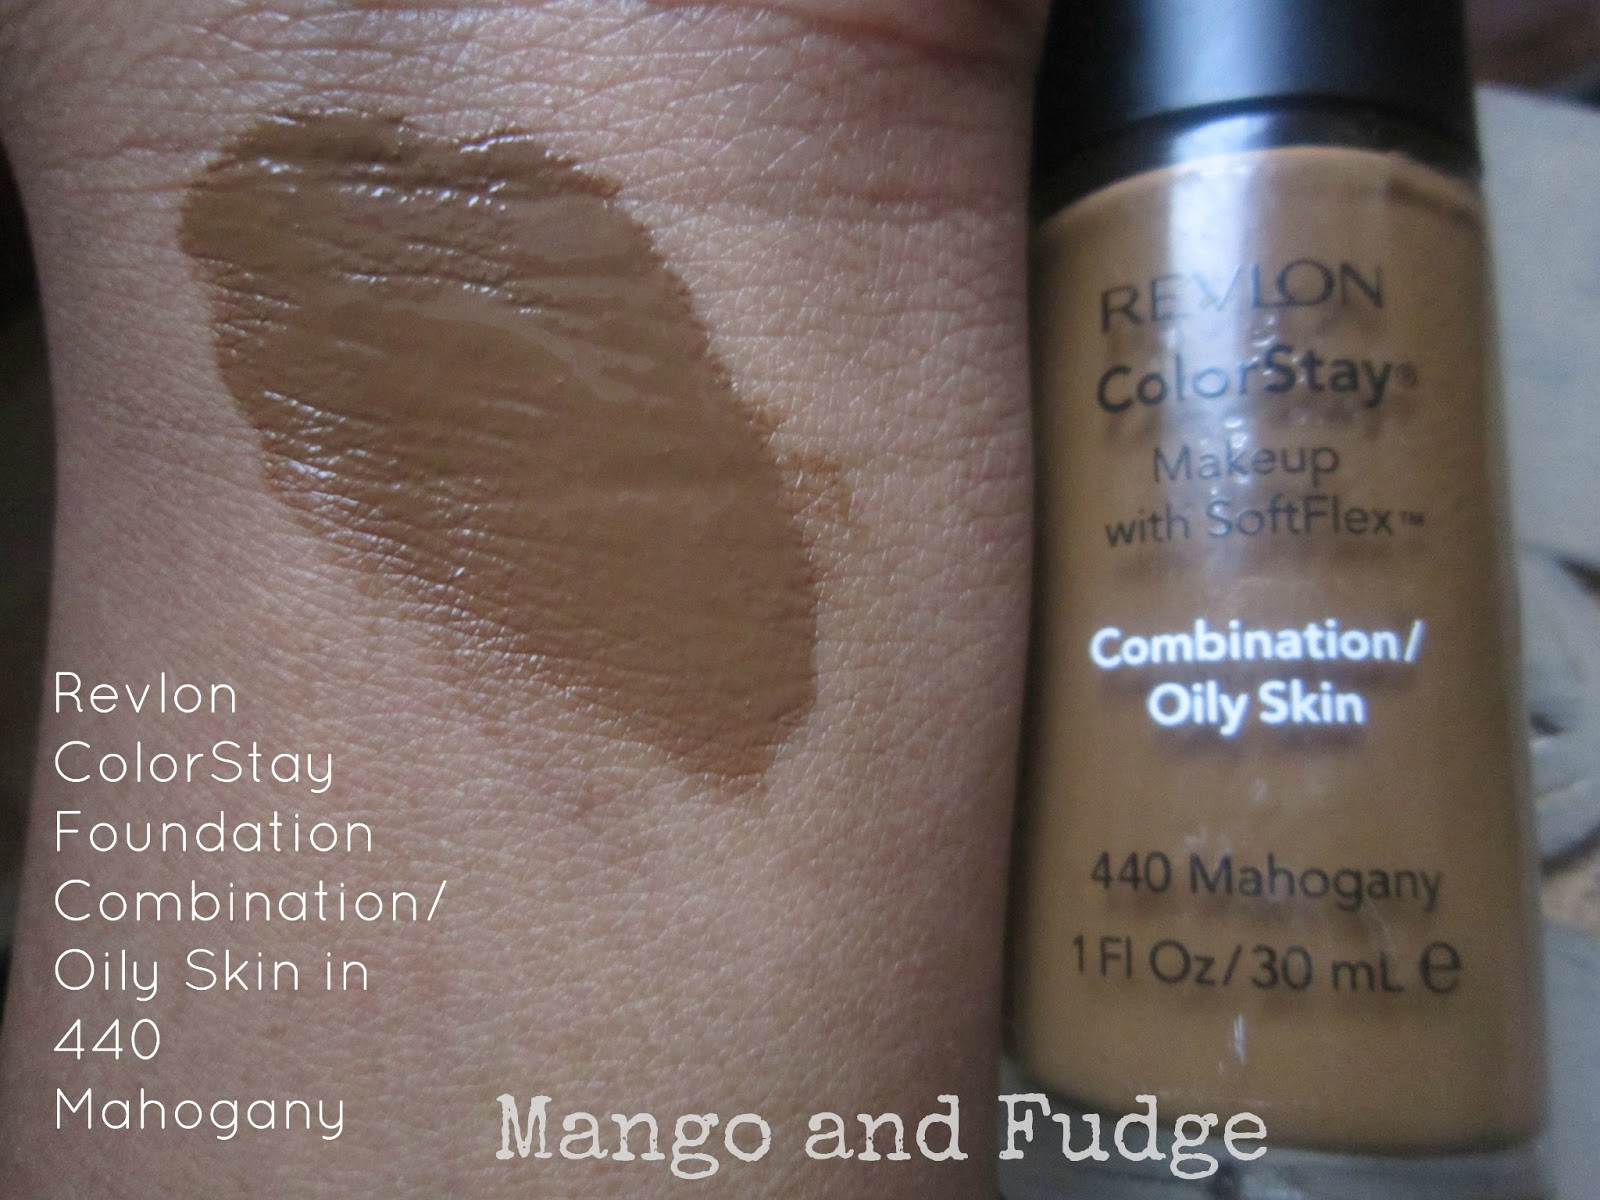 ColorStay Makeup for Normal/Dry Skin by Revlon #5